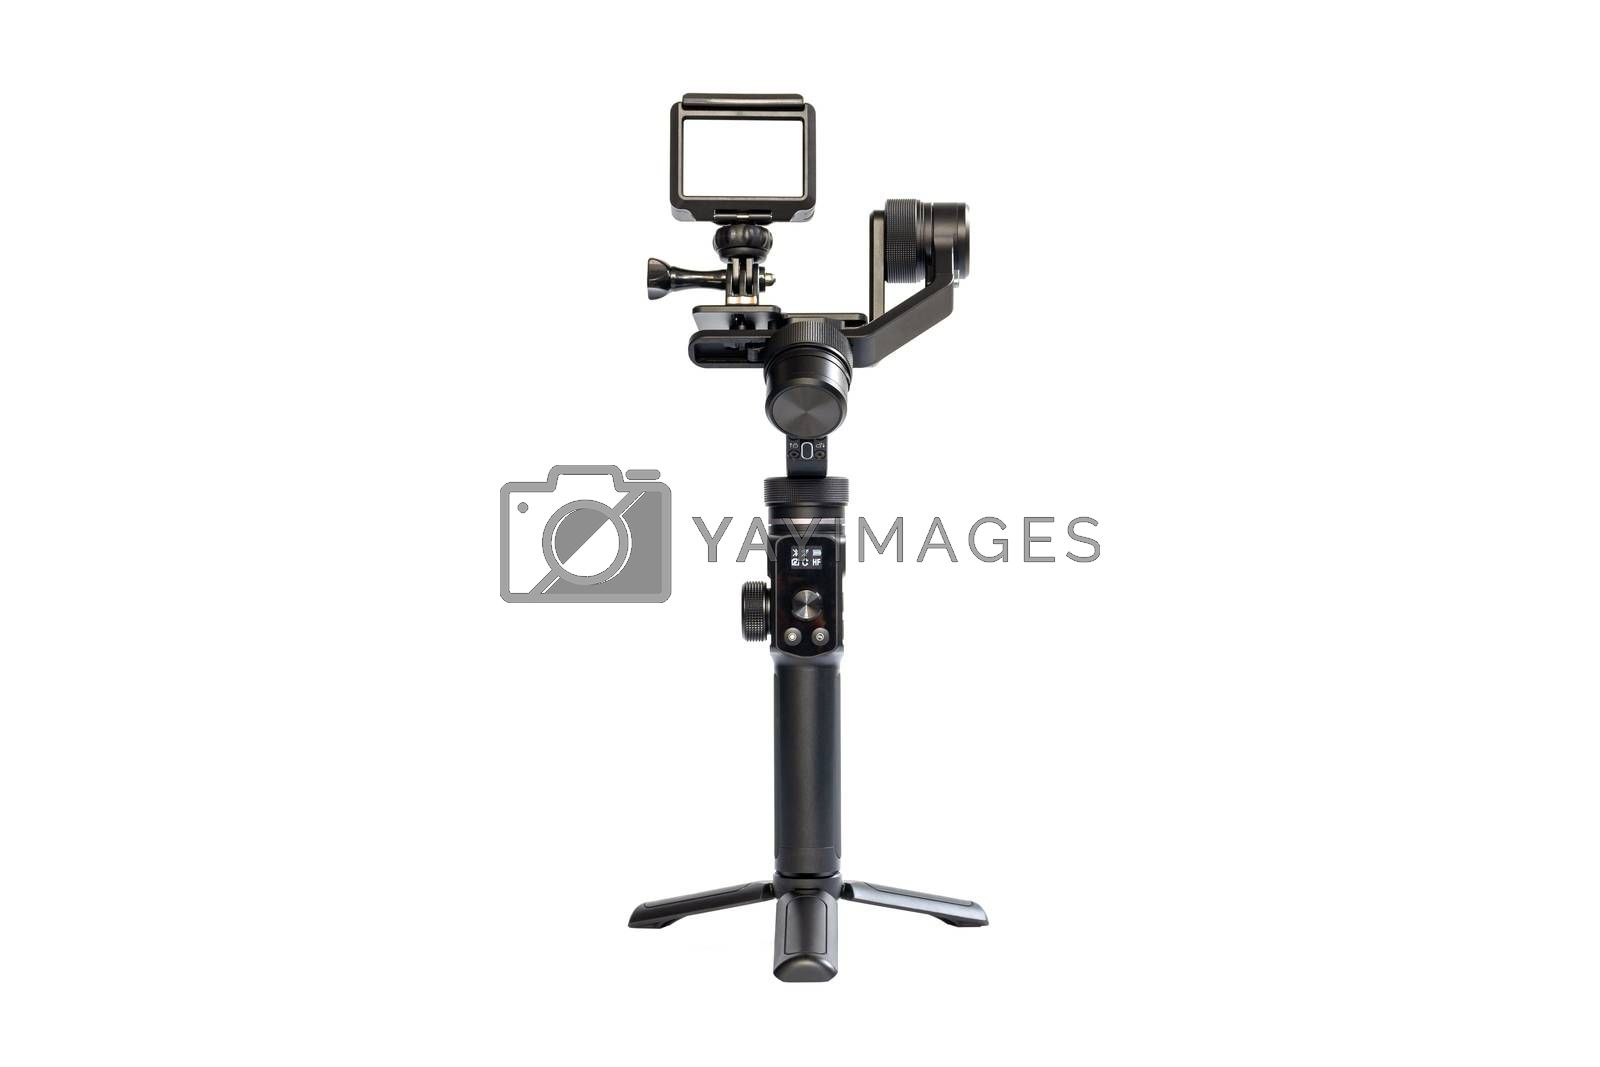 Action camera is mounted on a 3-axis motor stabilizer for smooth video recording isolated on white background.